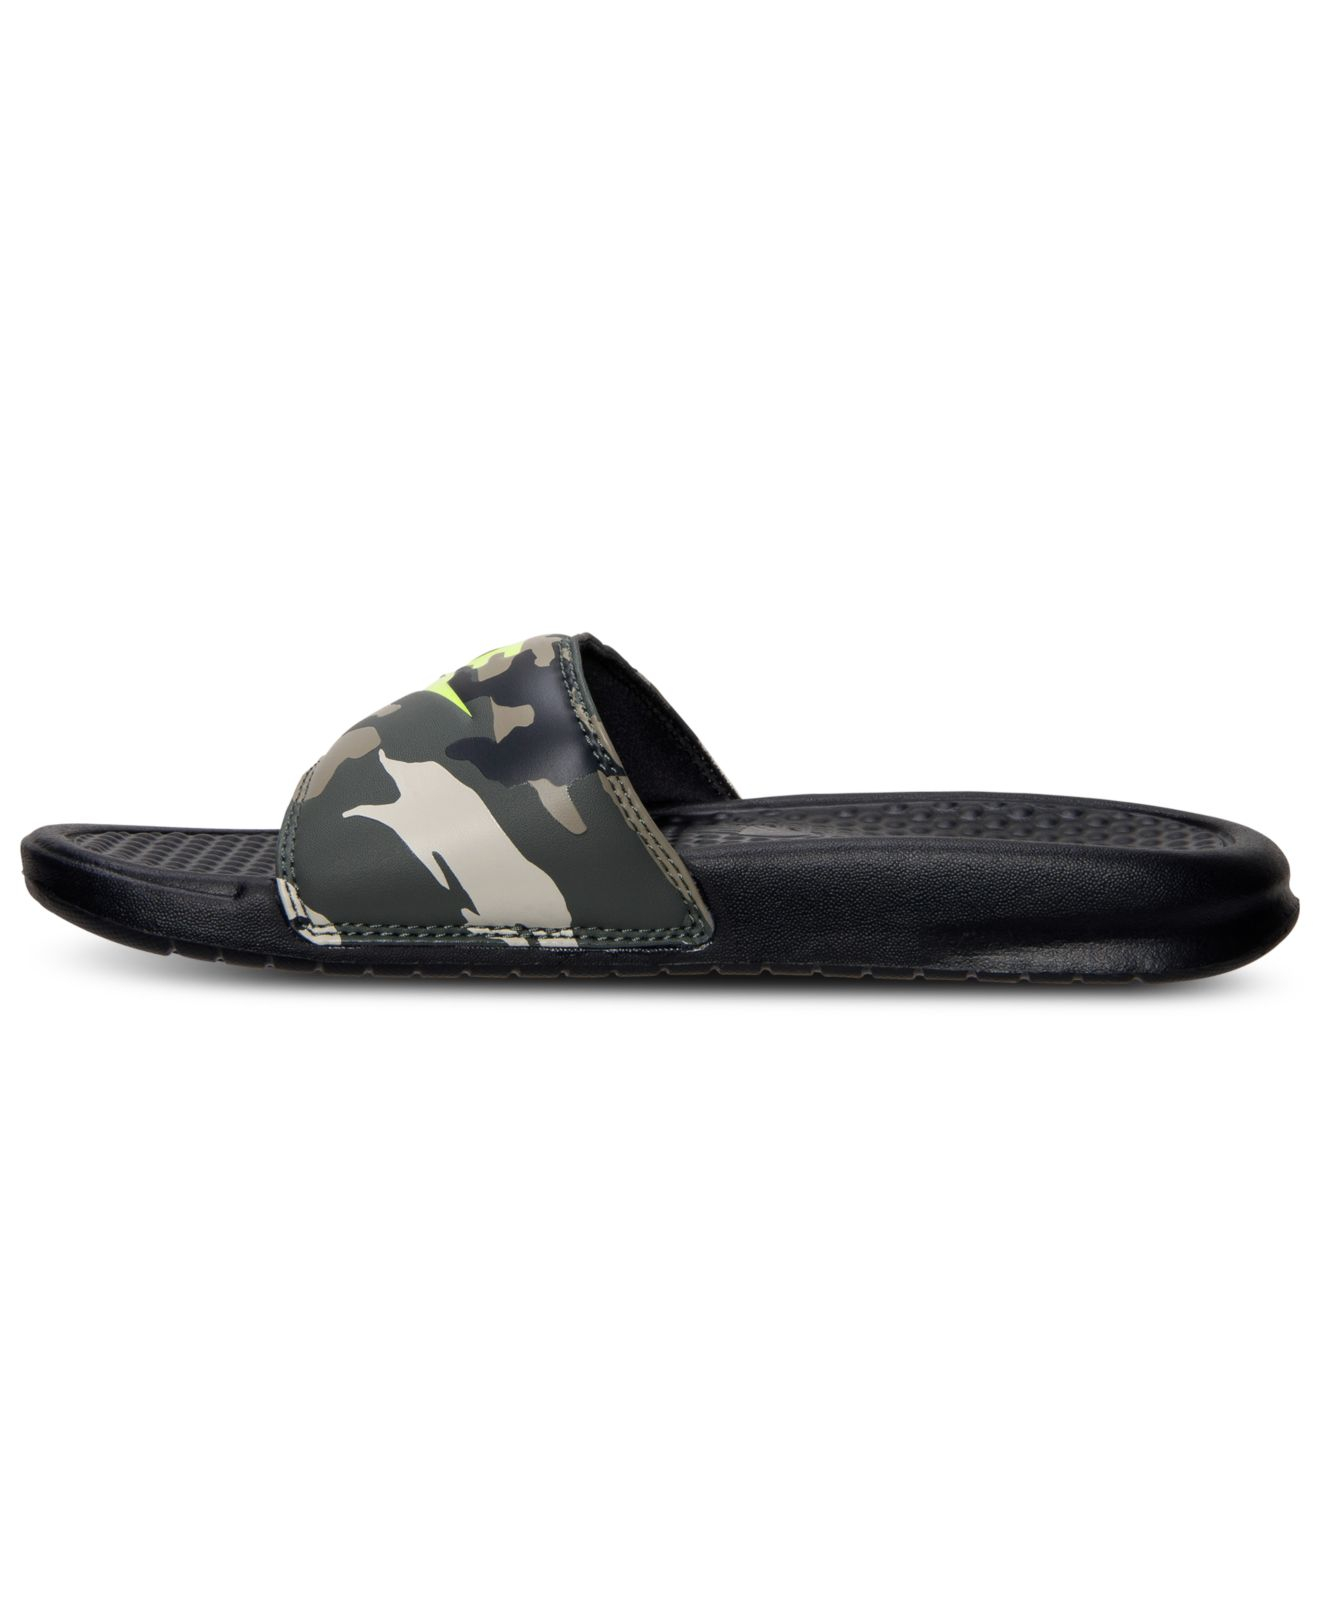 78efe5ffd7fc ... purchase lyst nike mens benassi jdi print slide sandals from finish  line in brown for men